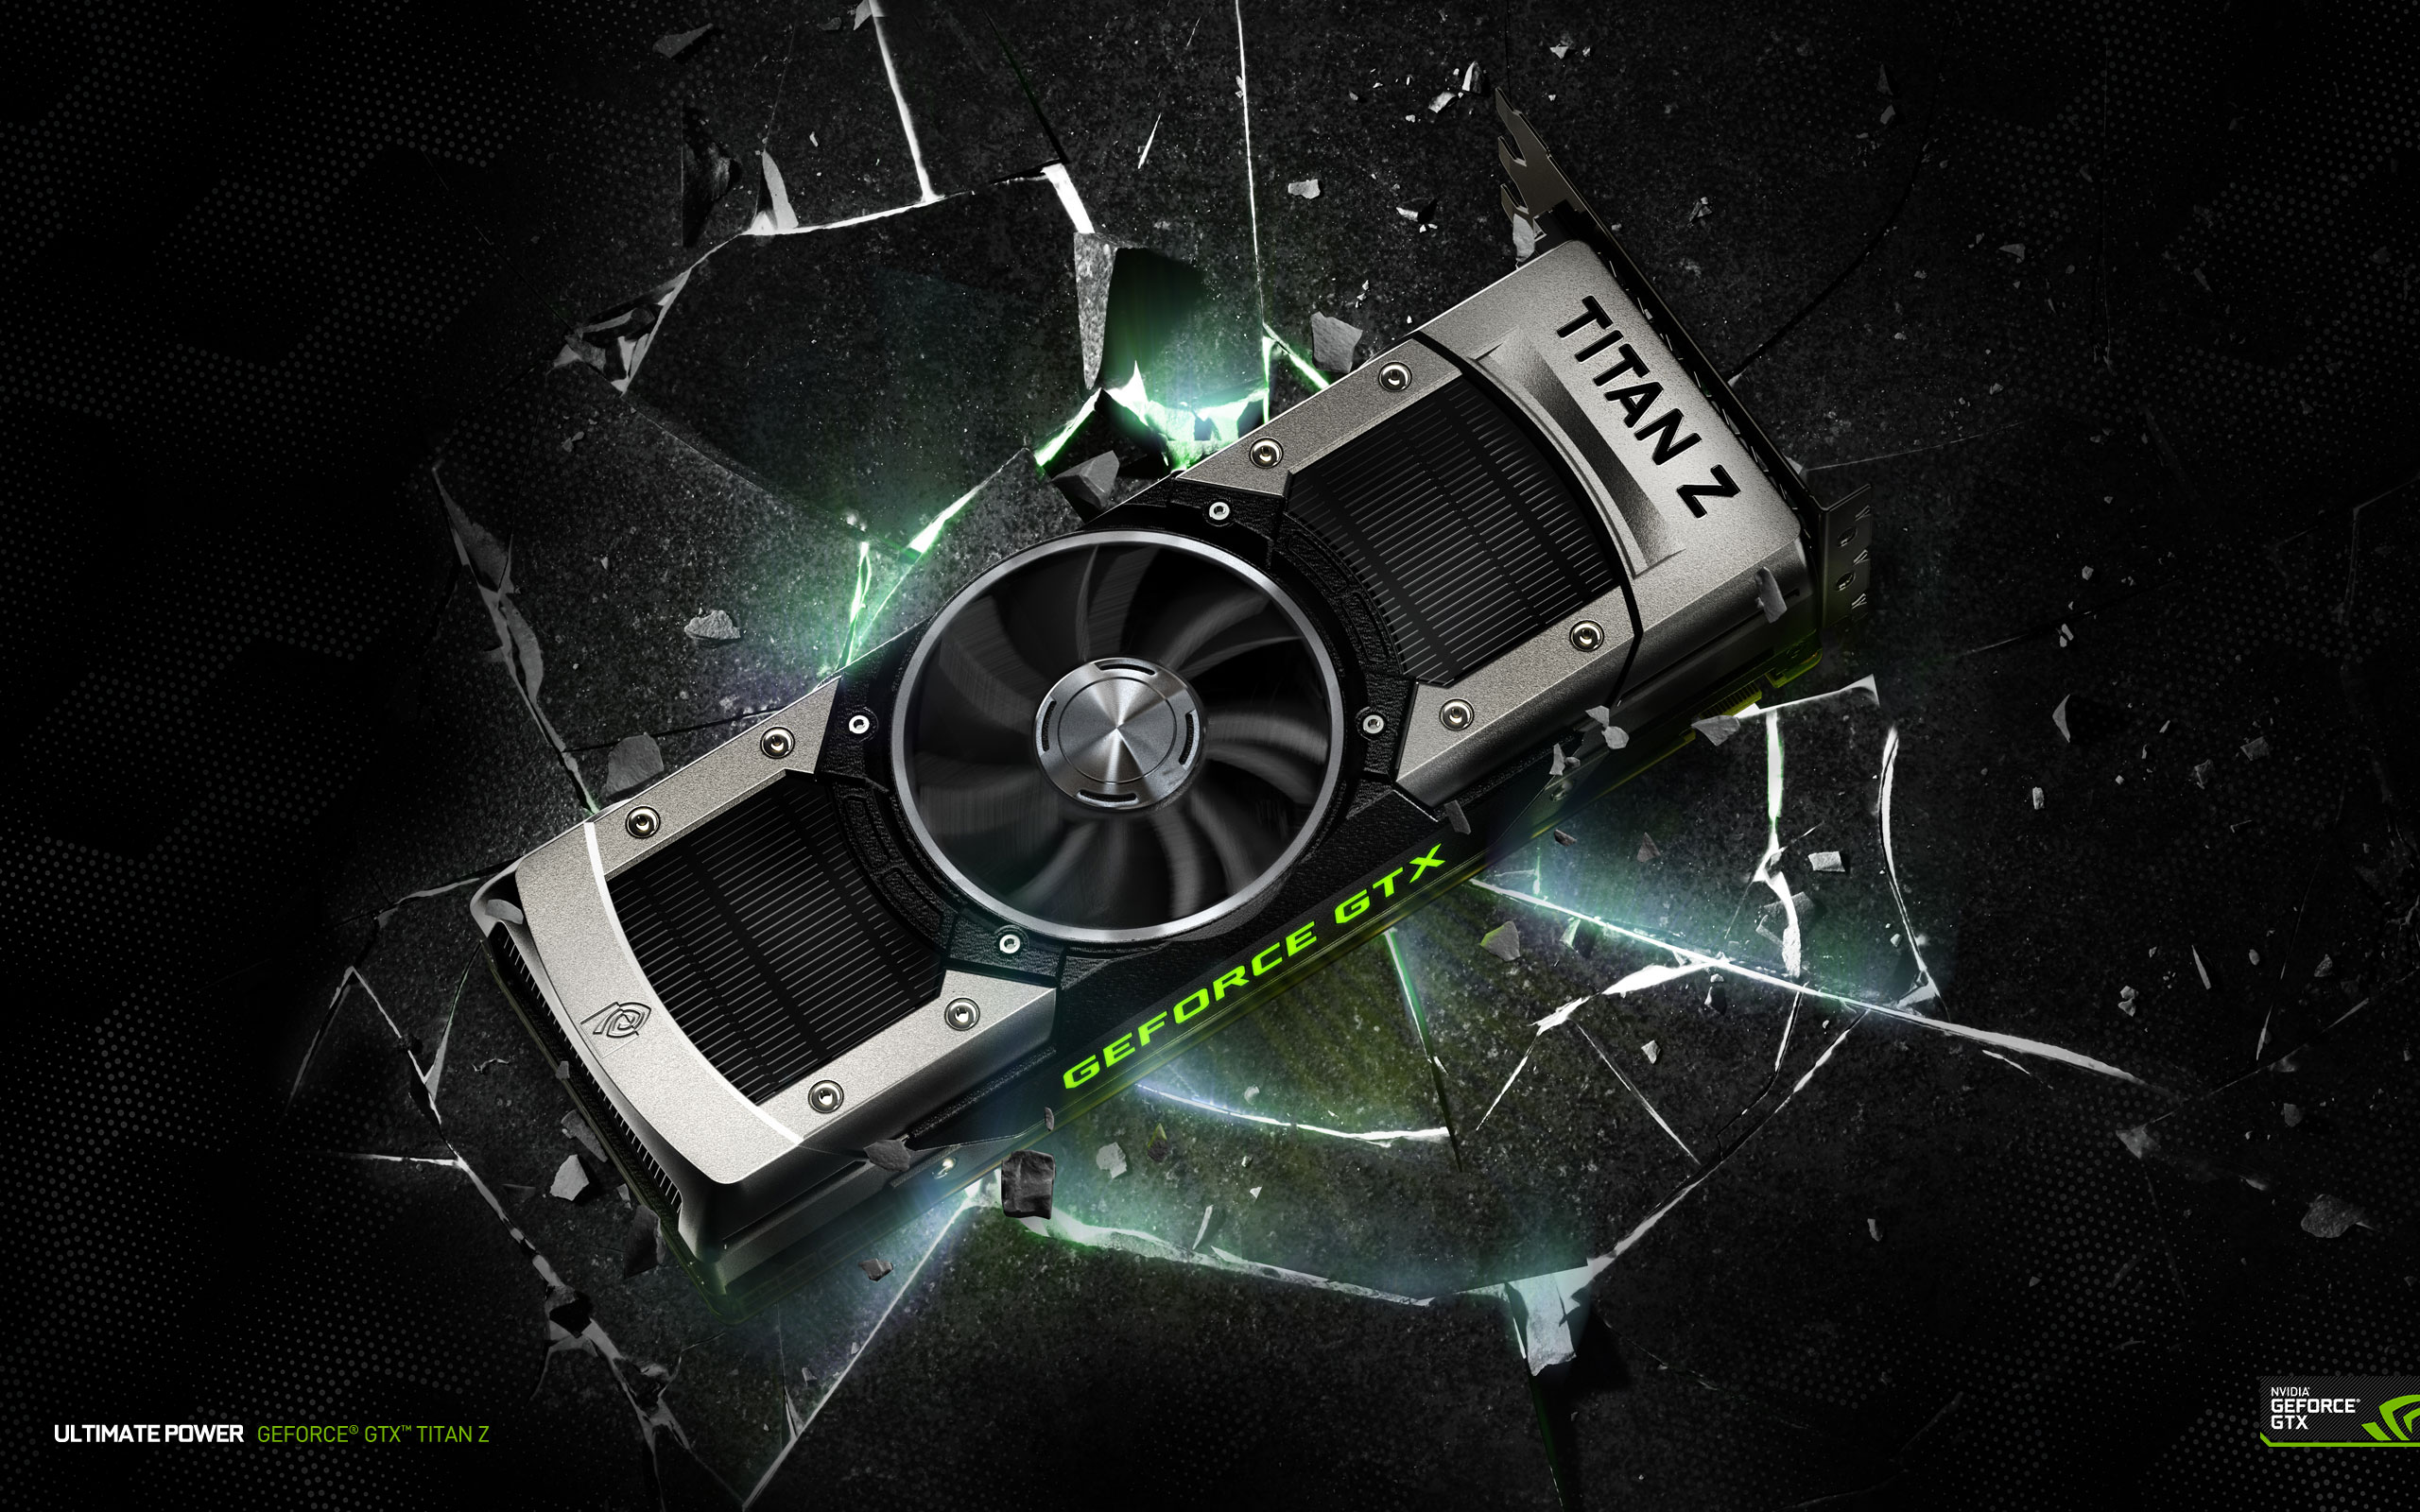 download geforce gtx titan z wallpapers geforce